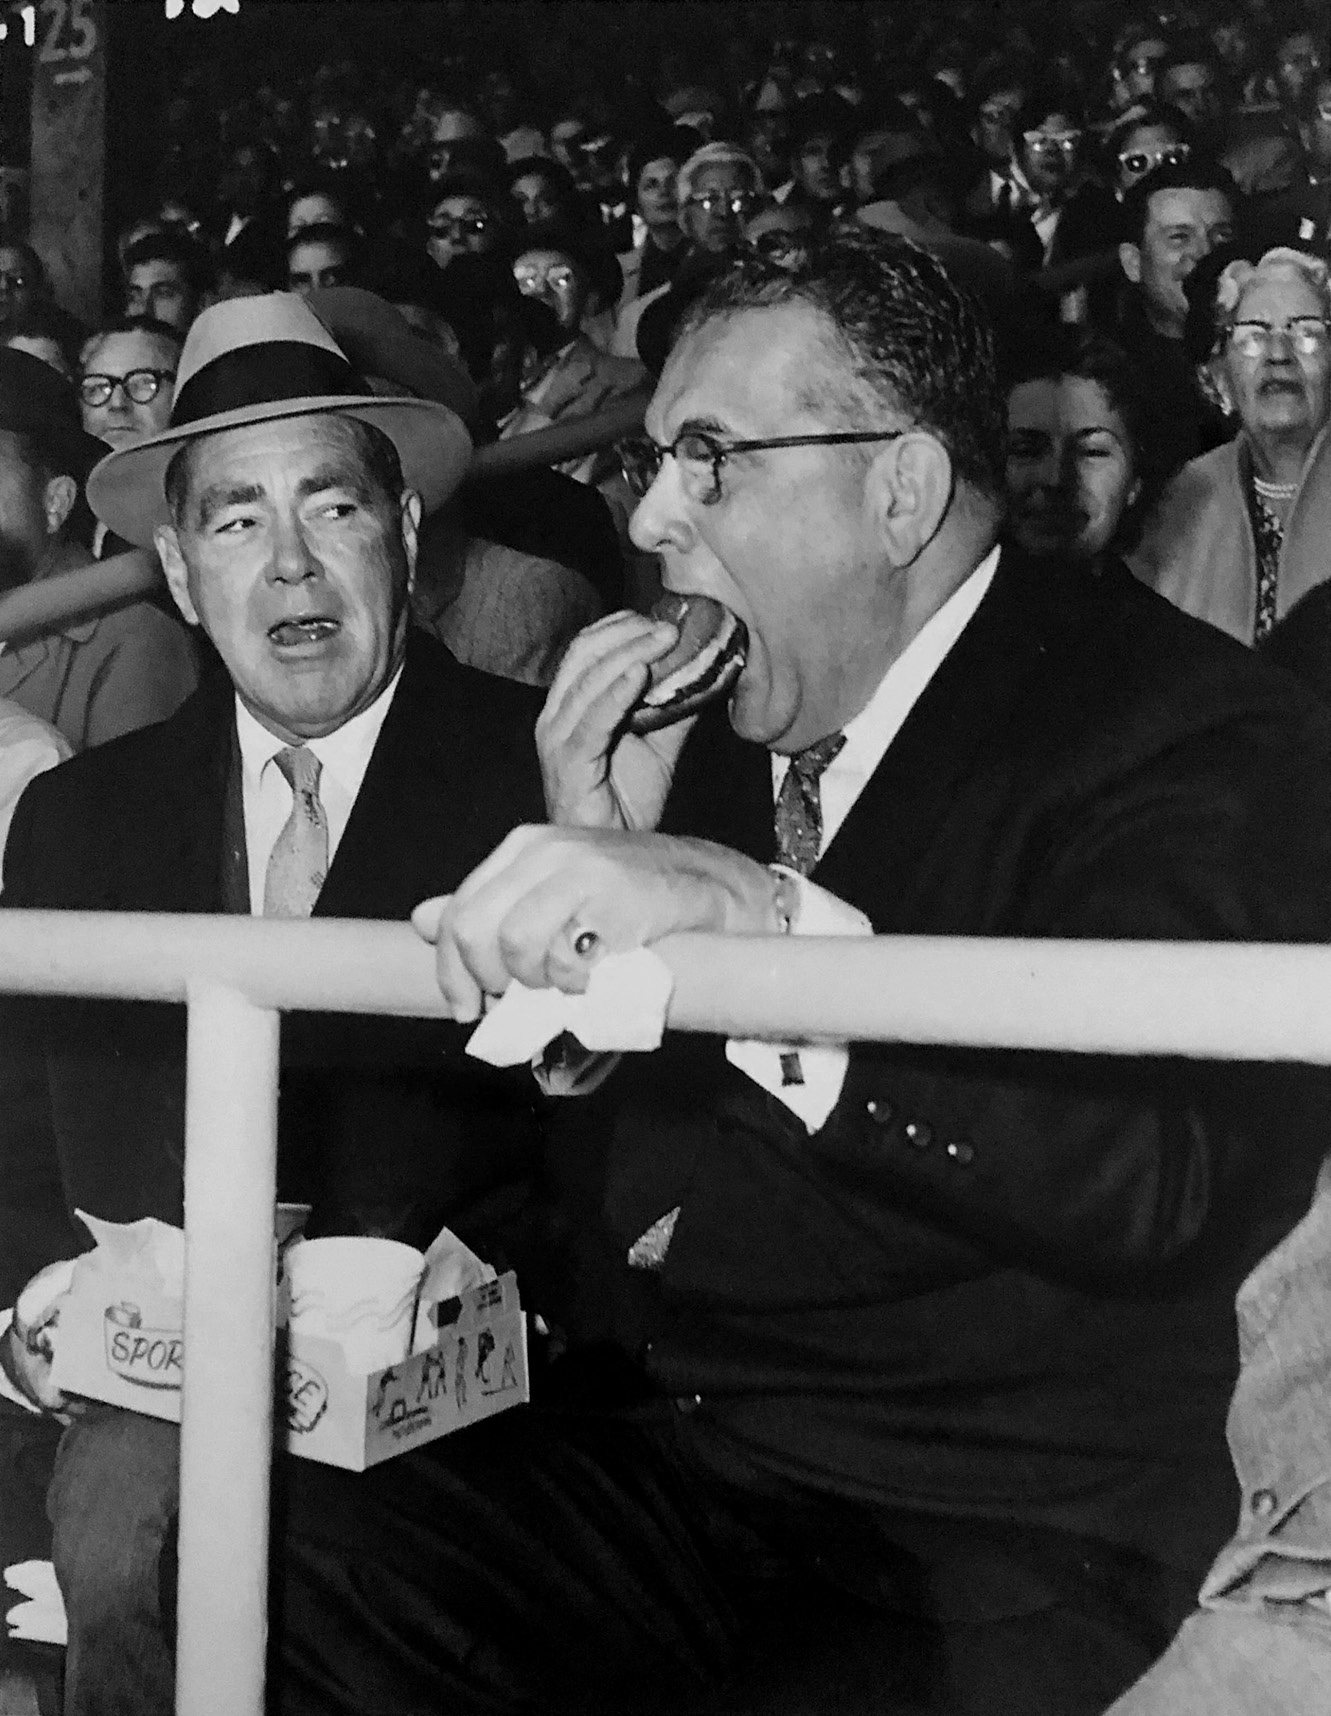 Arthur, chomping a hamburger, in the stands at the Chicago Stadium with partner Jimmy Norris.